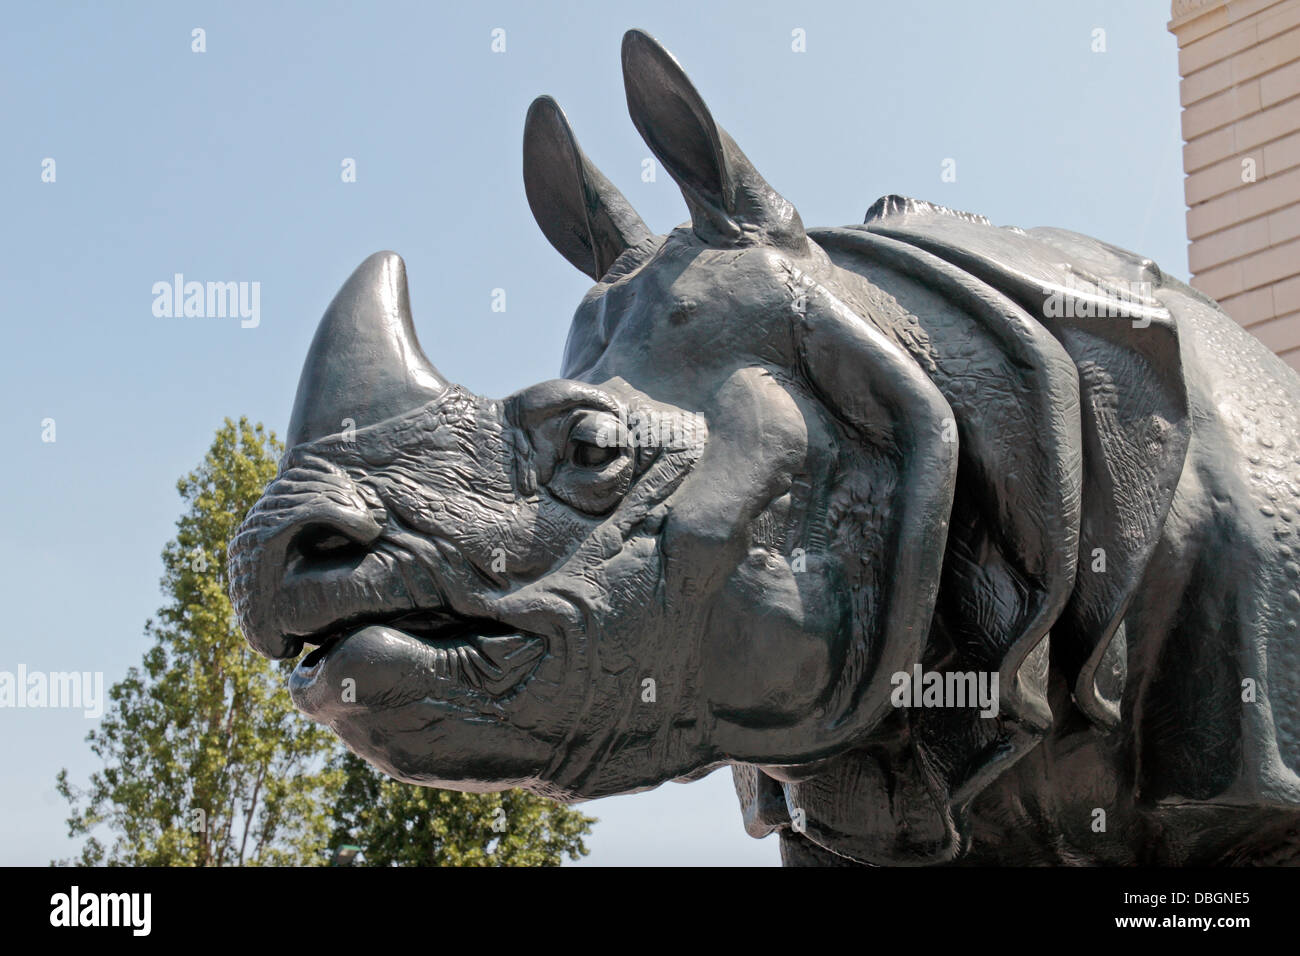 The Rhinoceros iron sculpture by Henri Alfred Jacquemart outside the Musee d'Orsay, Paris, France. - Stock Image